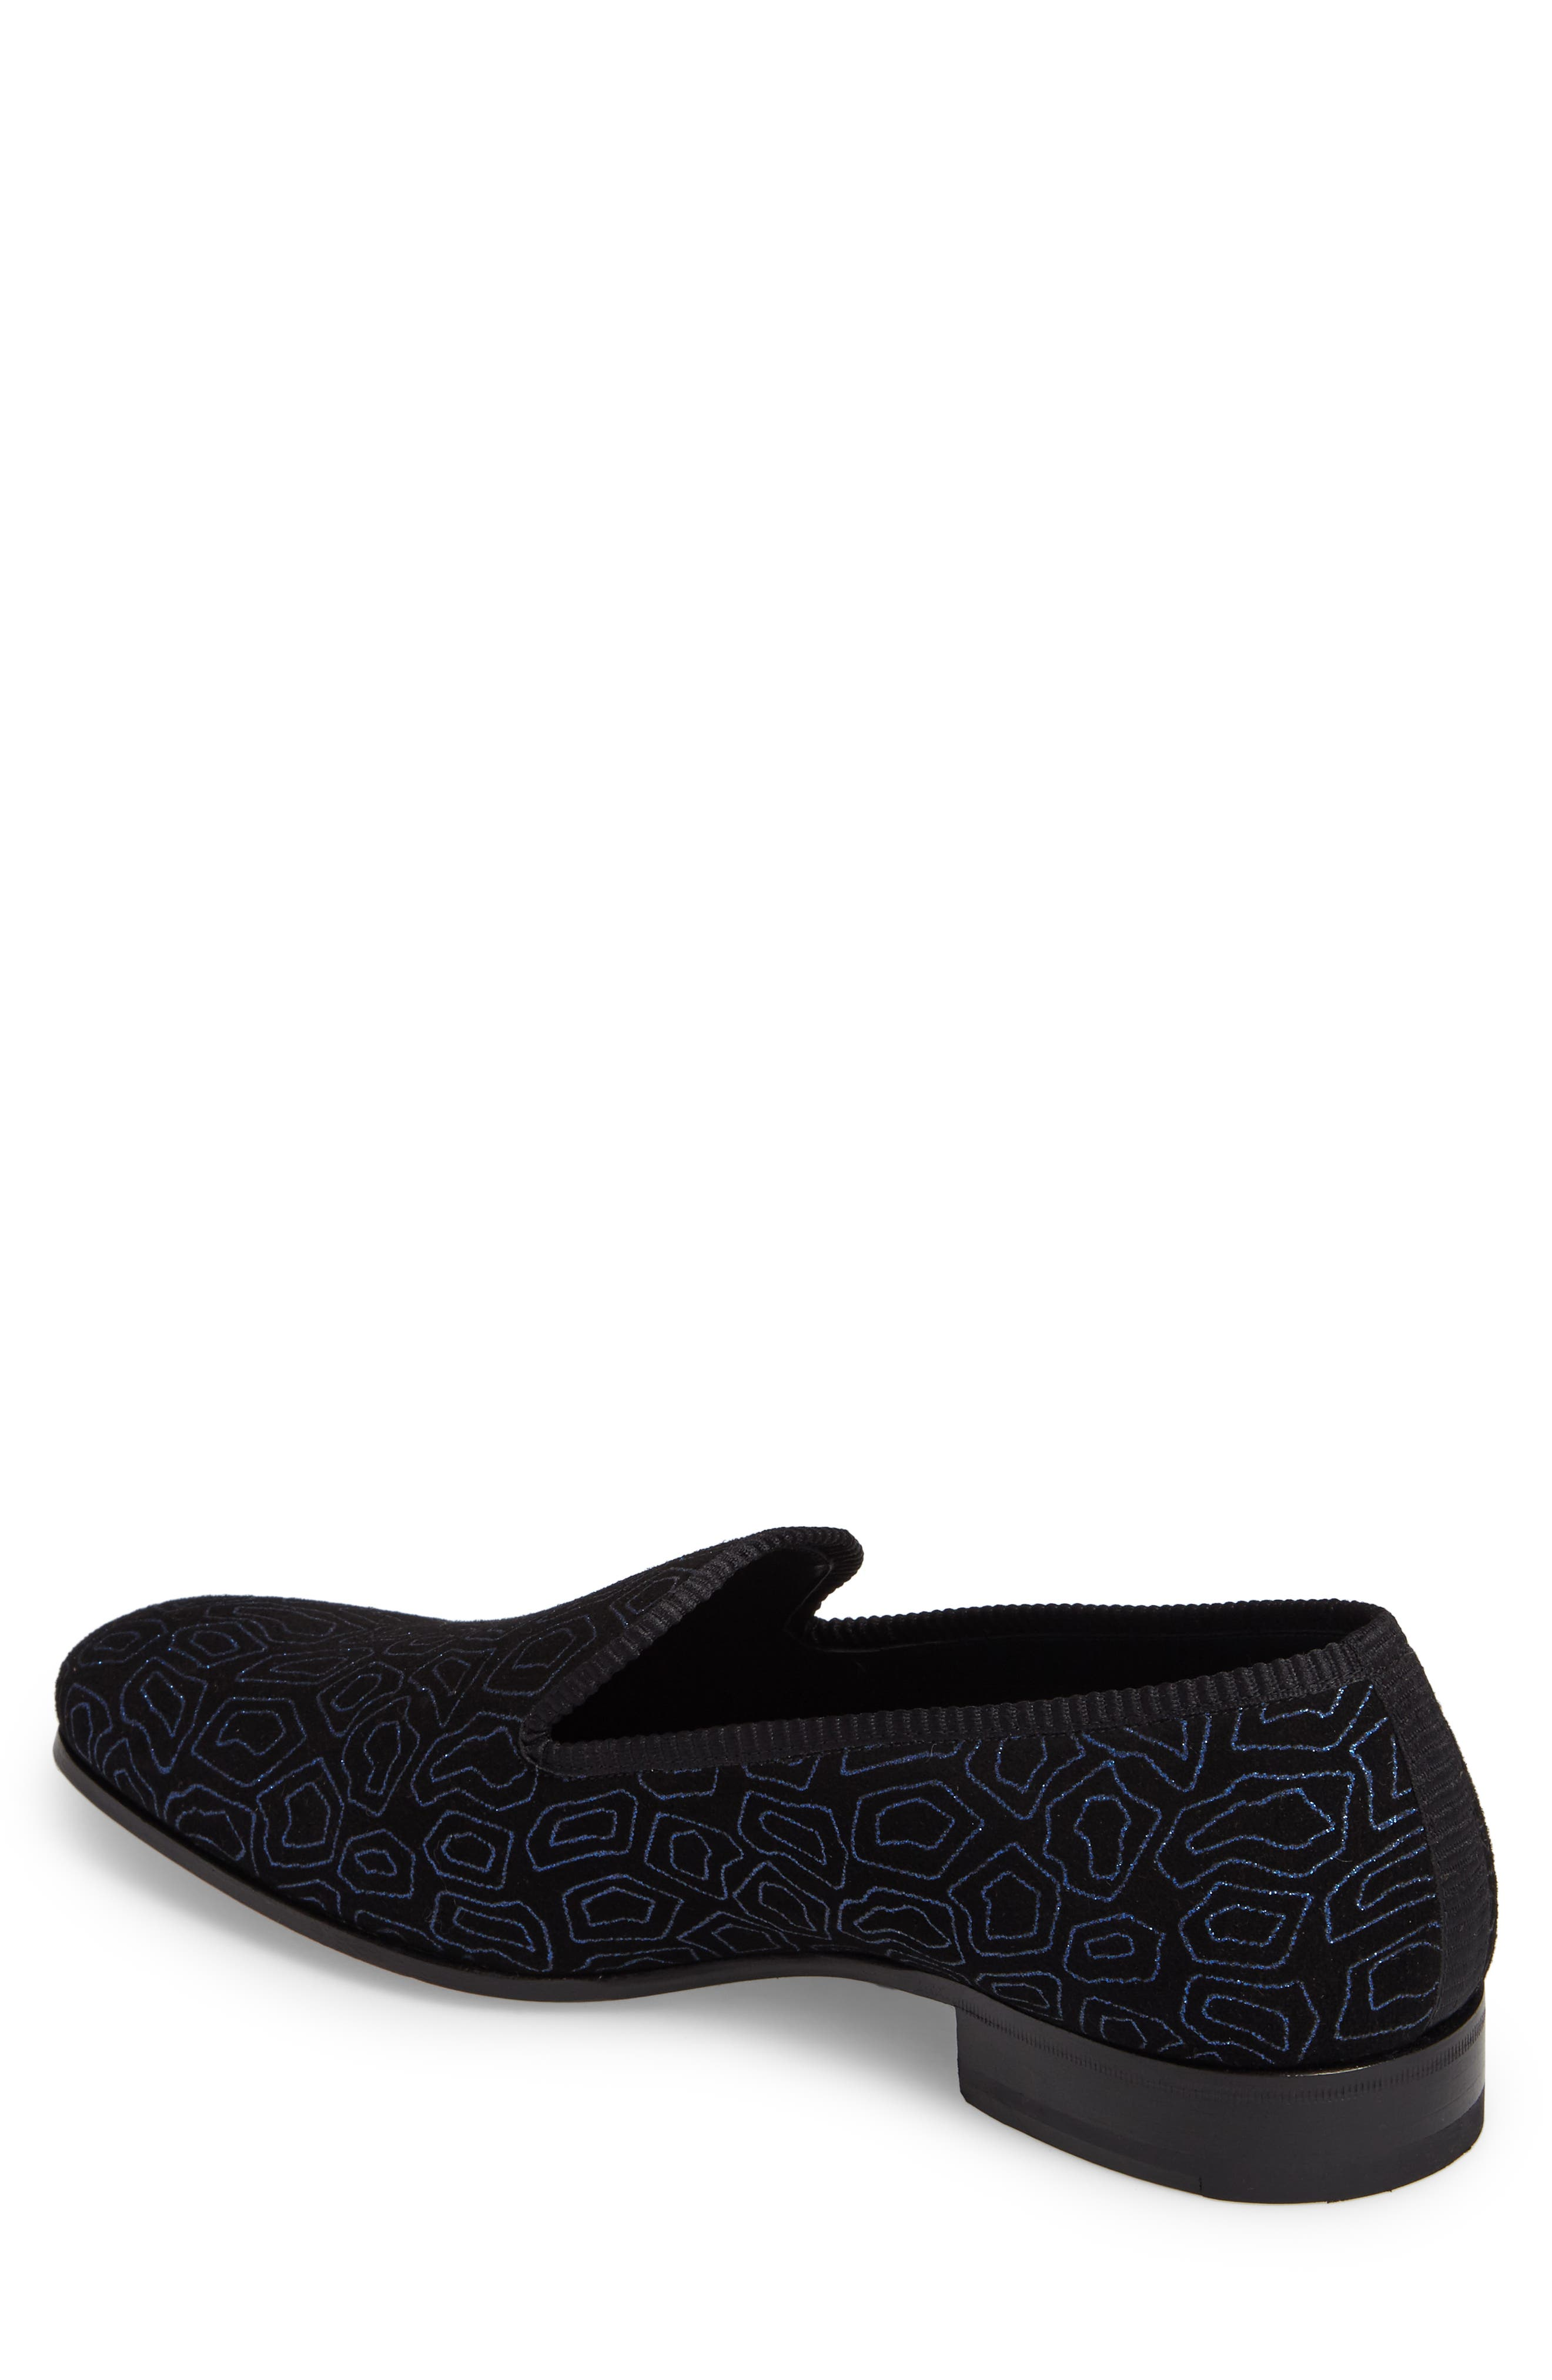 Camile Patterned Venetian Loafer,                             Alternate thumbnail 2, color,                             001